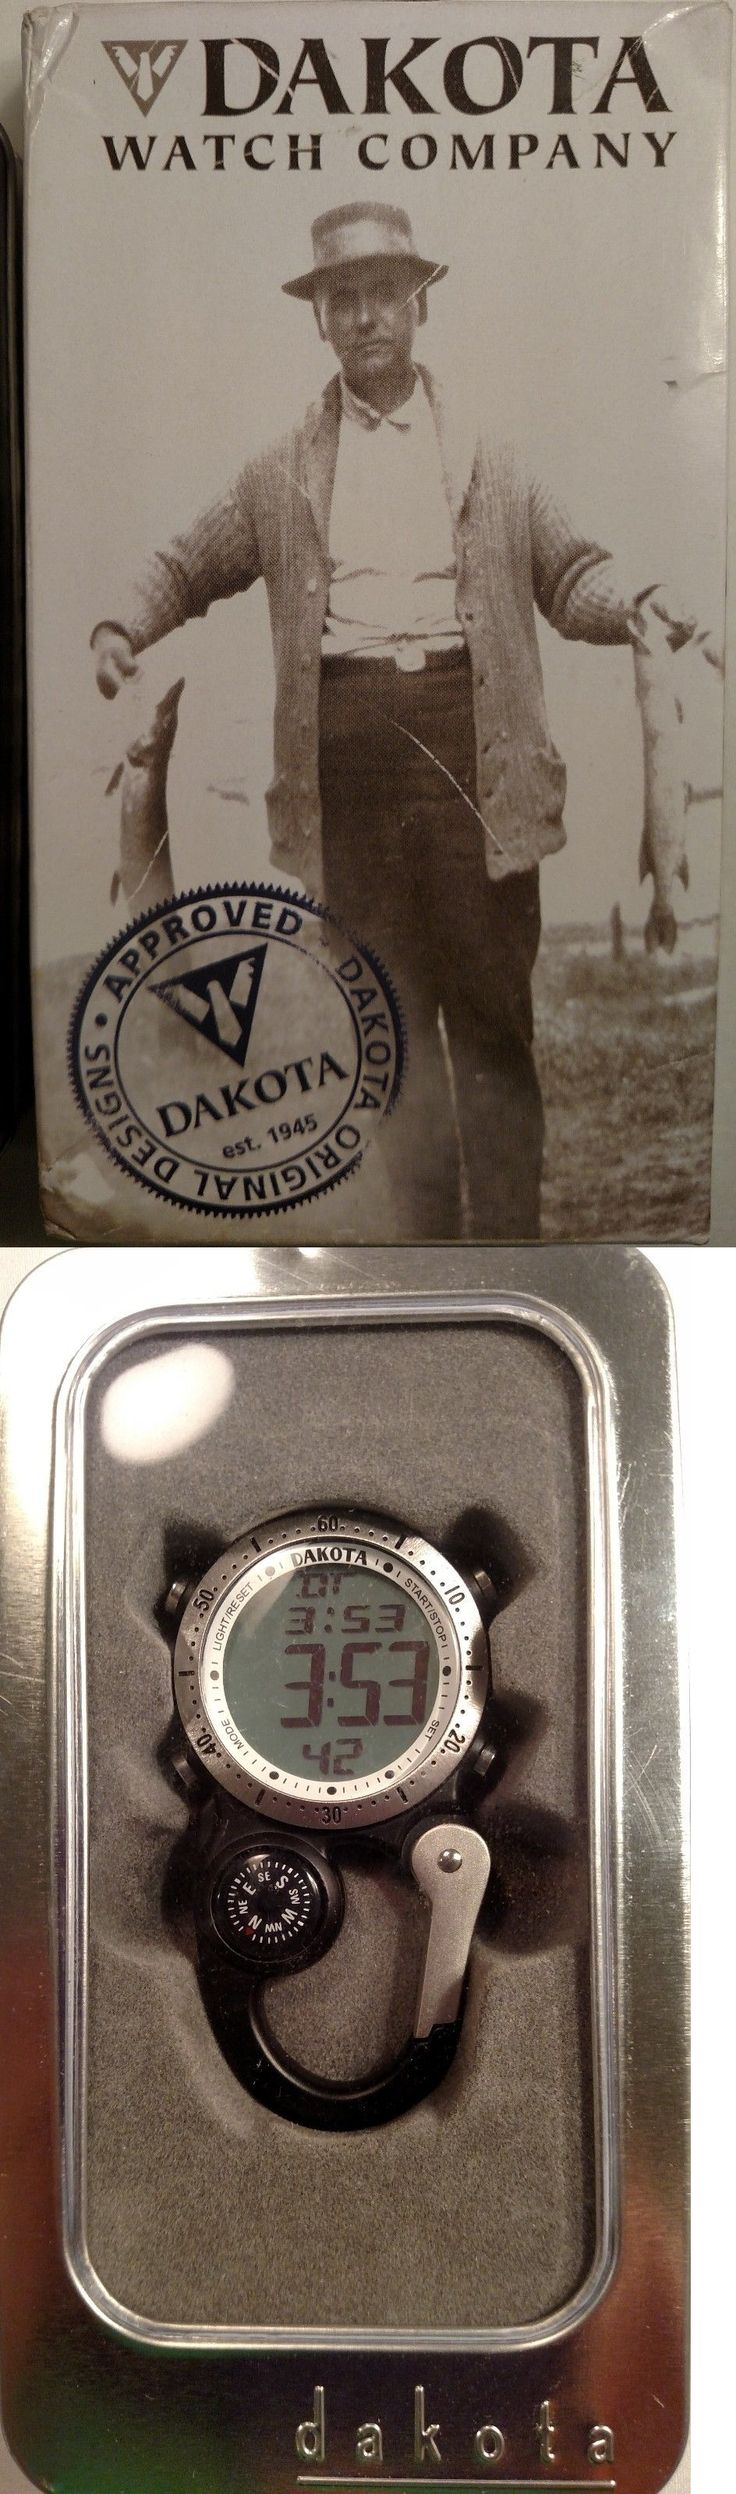 Key Ring Watches 173699: Dakota Watch Company Silver And Black Digi Clip Watch W Compass Free Shipping -> BUY IT NOW ONLY: $35.99 on eBay!